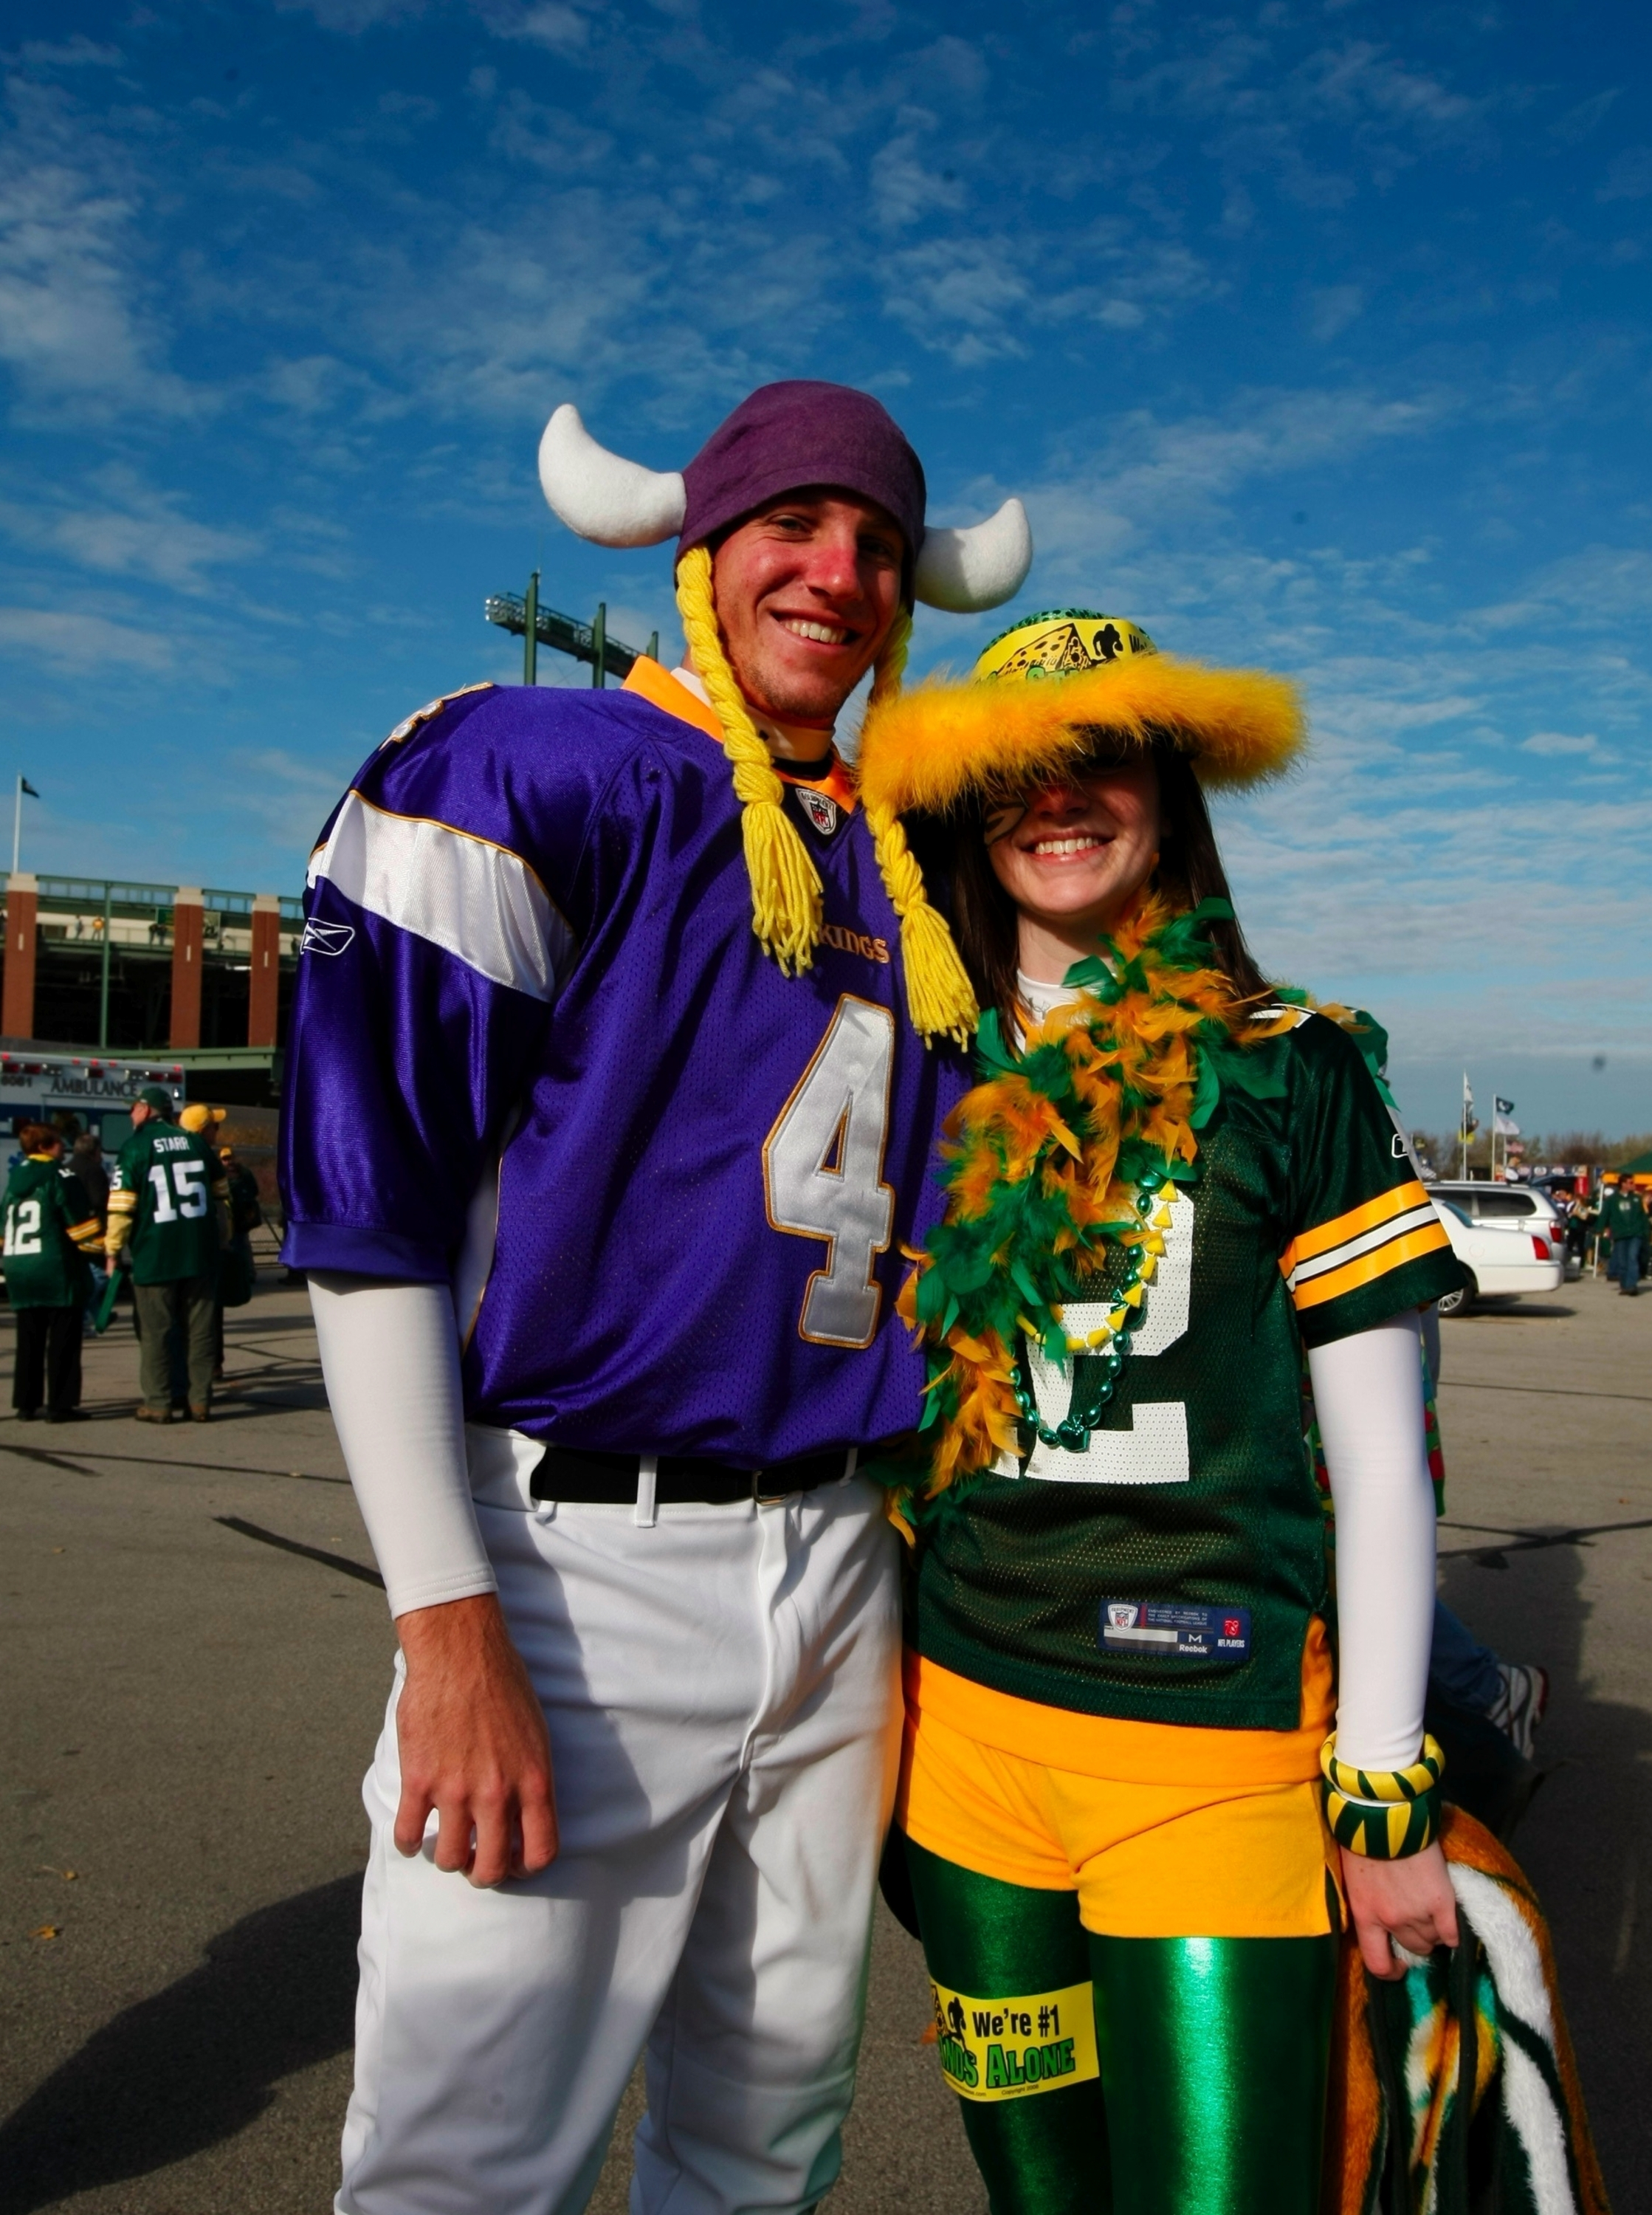 GREEN BAY, WI - NOVEMBER 01:  Fans gather outside Lambeau Field before the start of the game between the Green Bay Packers and the Minnesota Vikings on November 1, 2009 in Green Bay, Wisconsin. (Photo by Scott Boehm/Getty Images)